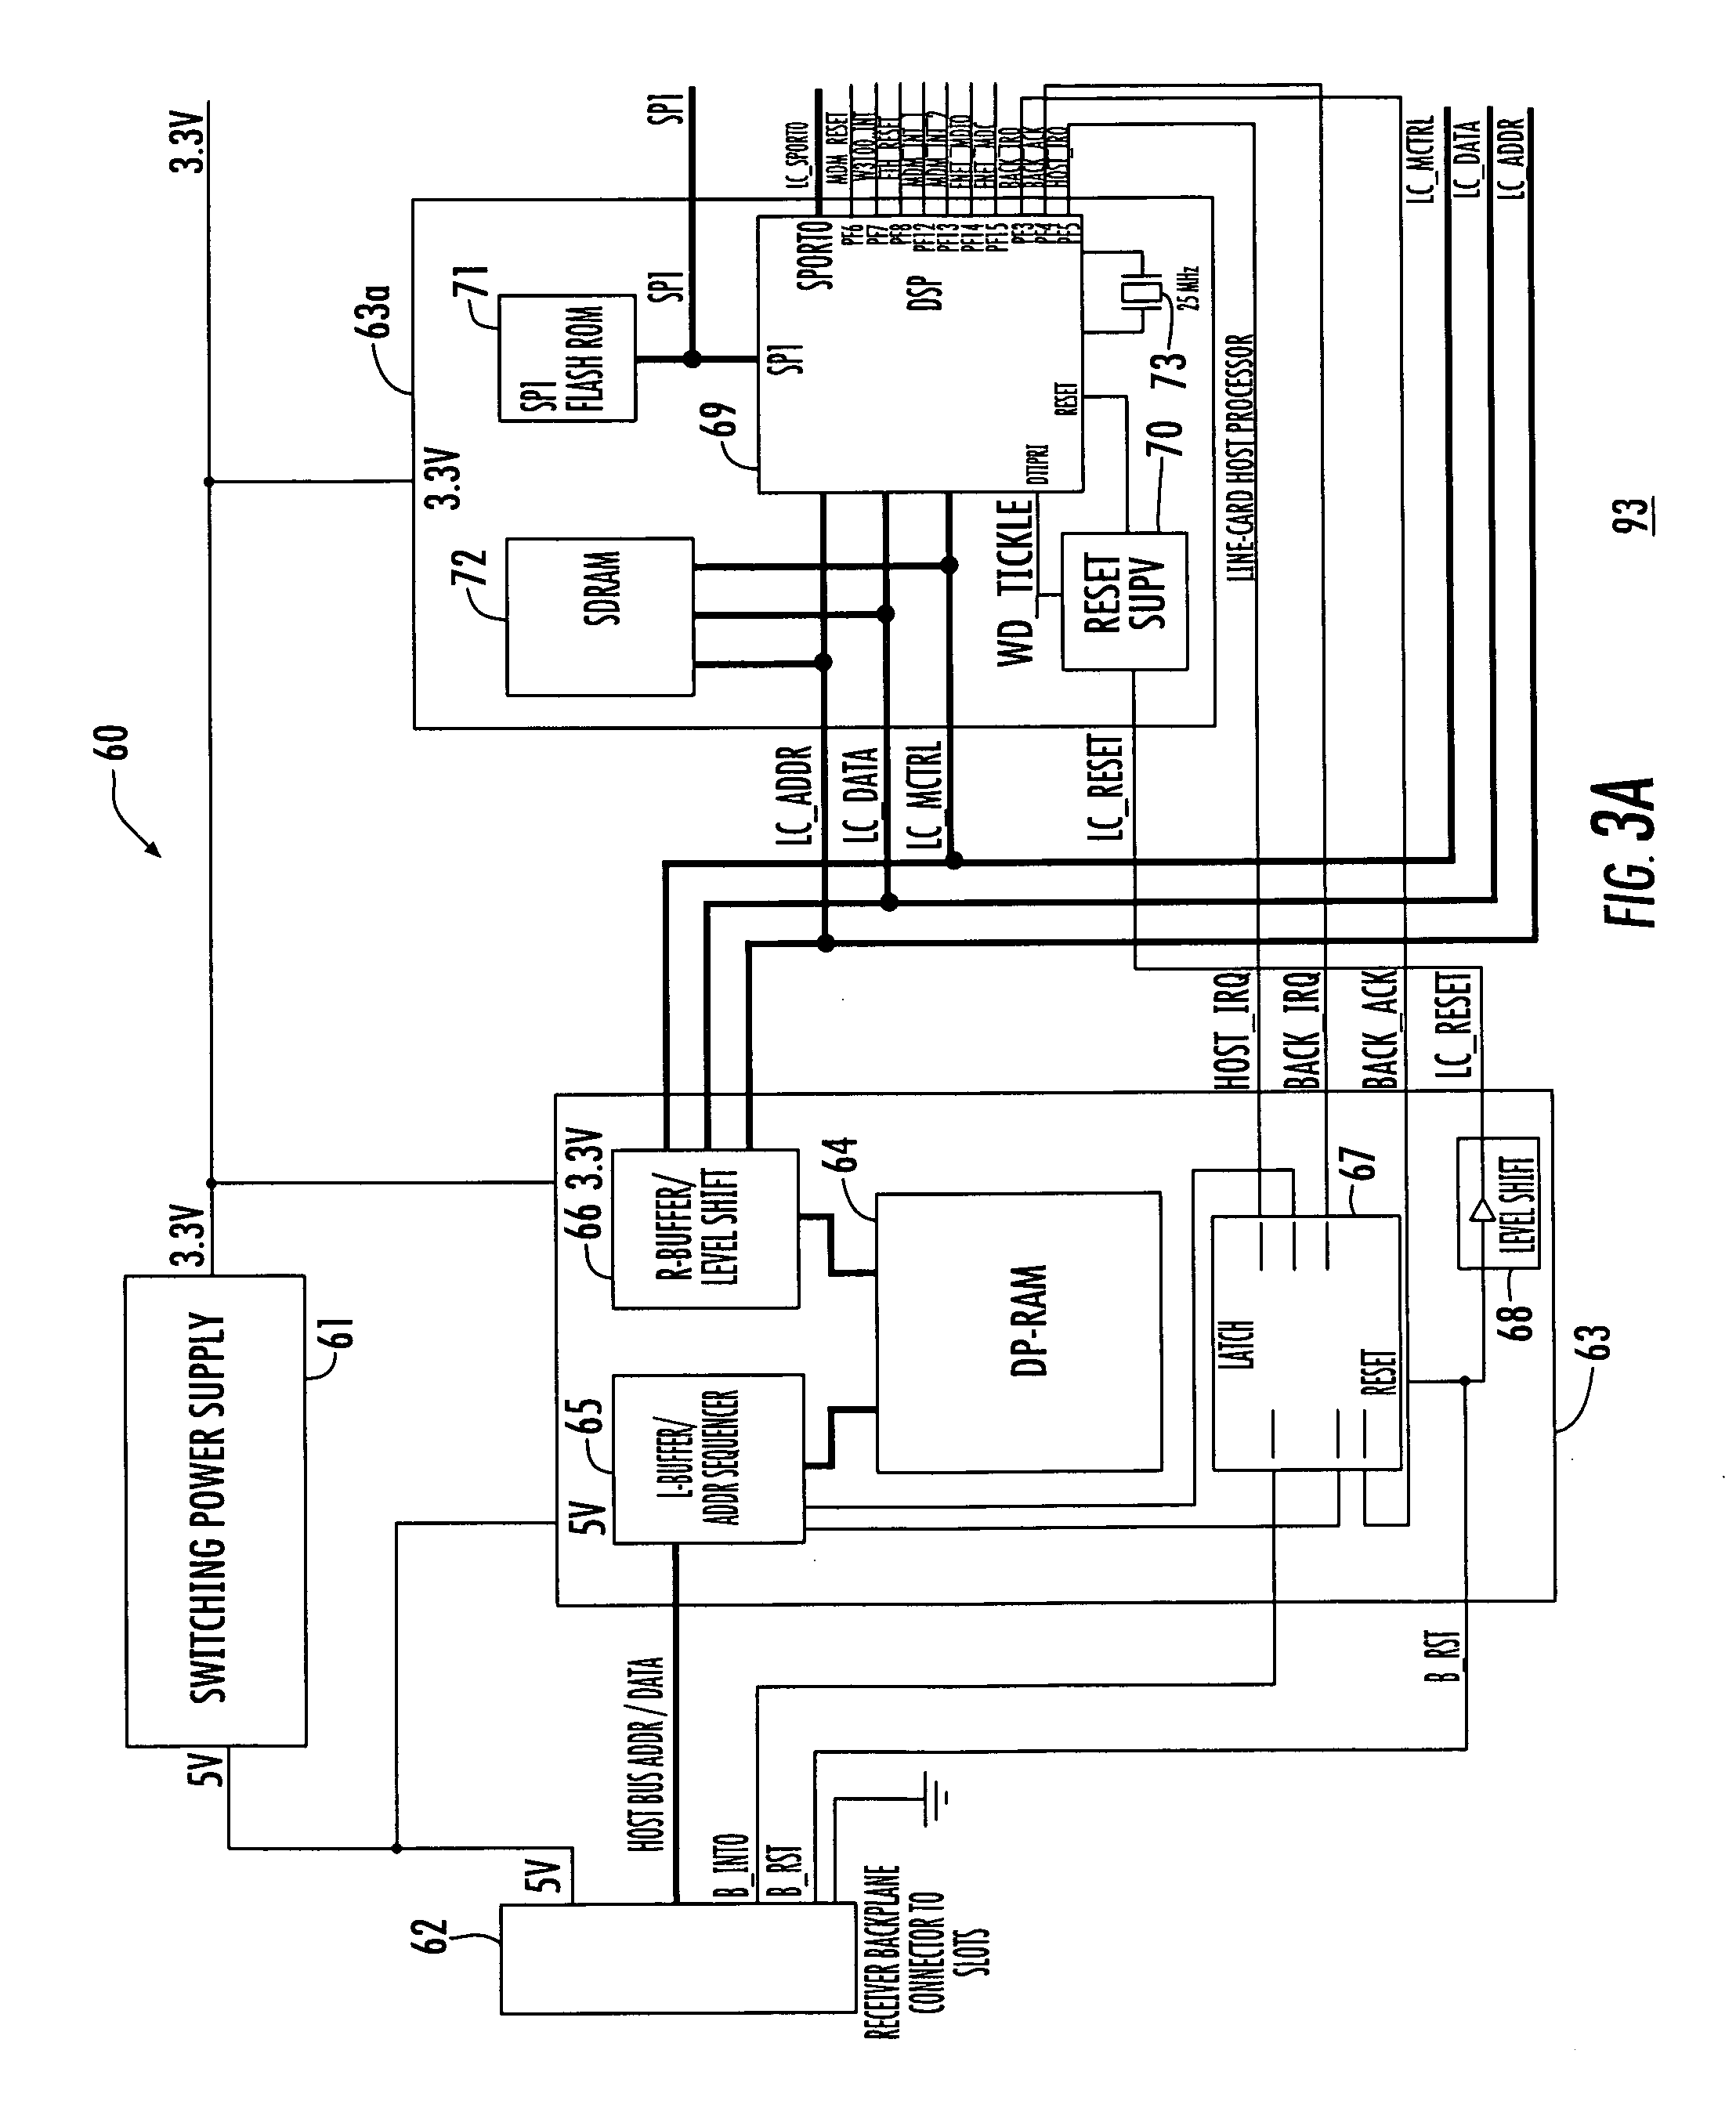 Electric Furnace Sequencer Wiring Diagram 41 Images Older Sequecer Goodman Fan Carrier Heat Pump Schematic Us20090058630a1 20090305 D00004resize6652c814